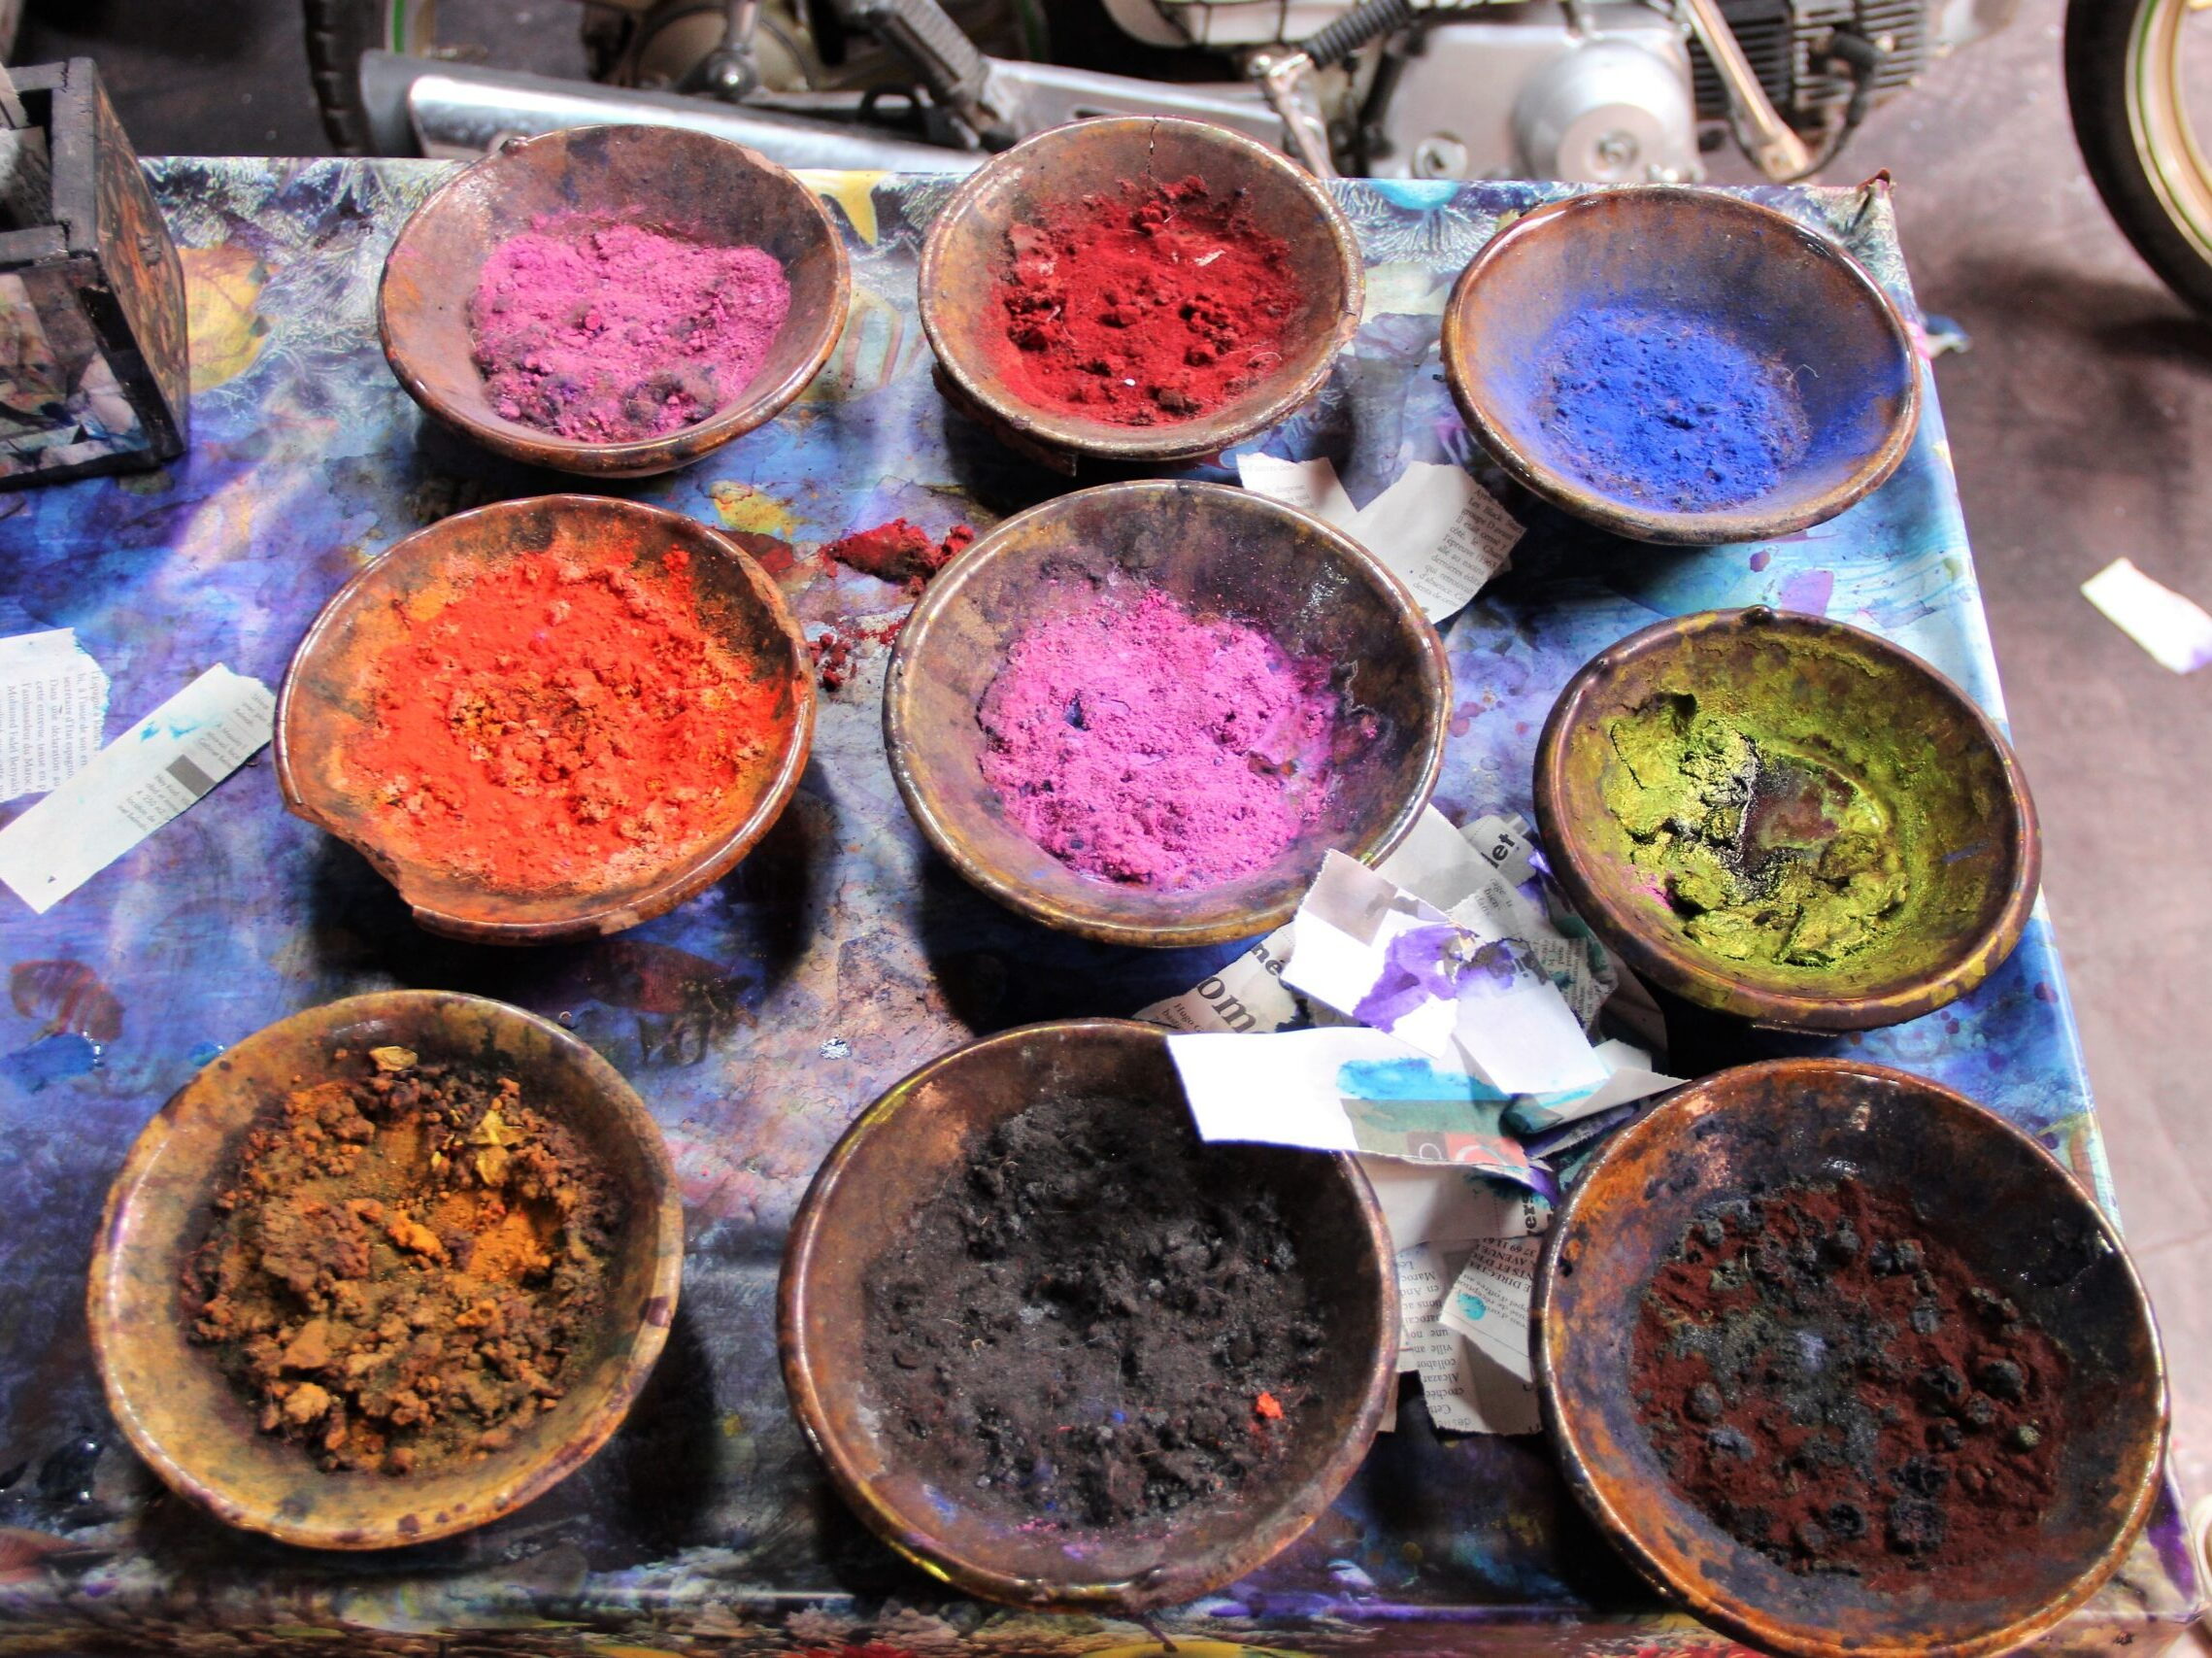 Dyes in Marrakech, Morocco